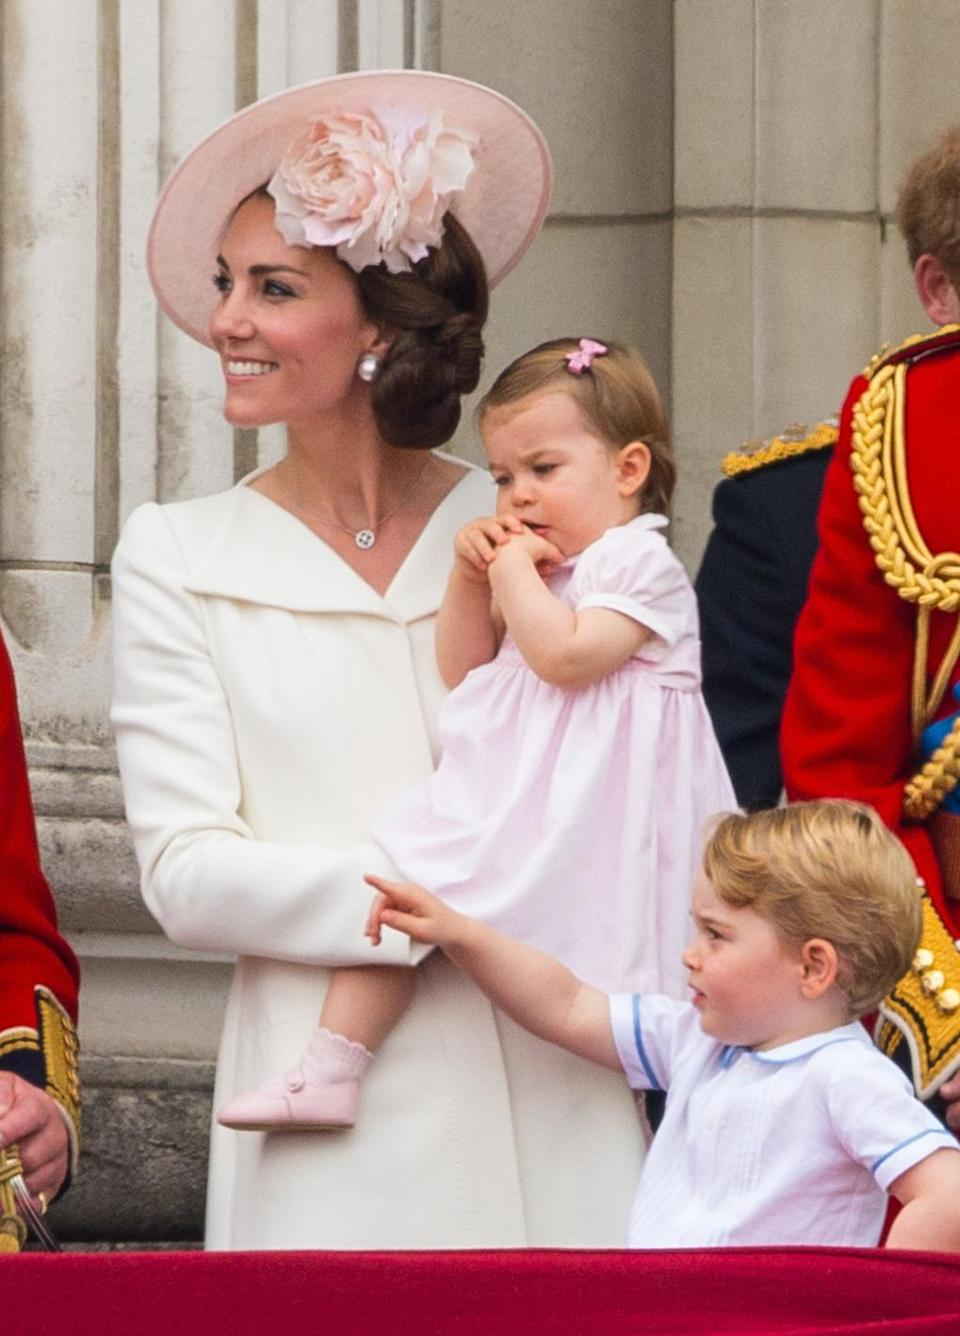 <p>The Duchess recycled her Alexander McQueen outfit from Princess Charlotte's christening for an appearance on the balcony at the Queen's 90th birthday celebration. A pale pink hat by Philip Treacy and pearl Balenciaga earrings completed the look. </p><p><i>[Photo: PA]</i></p>